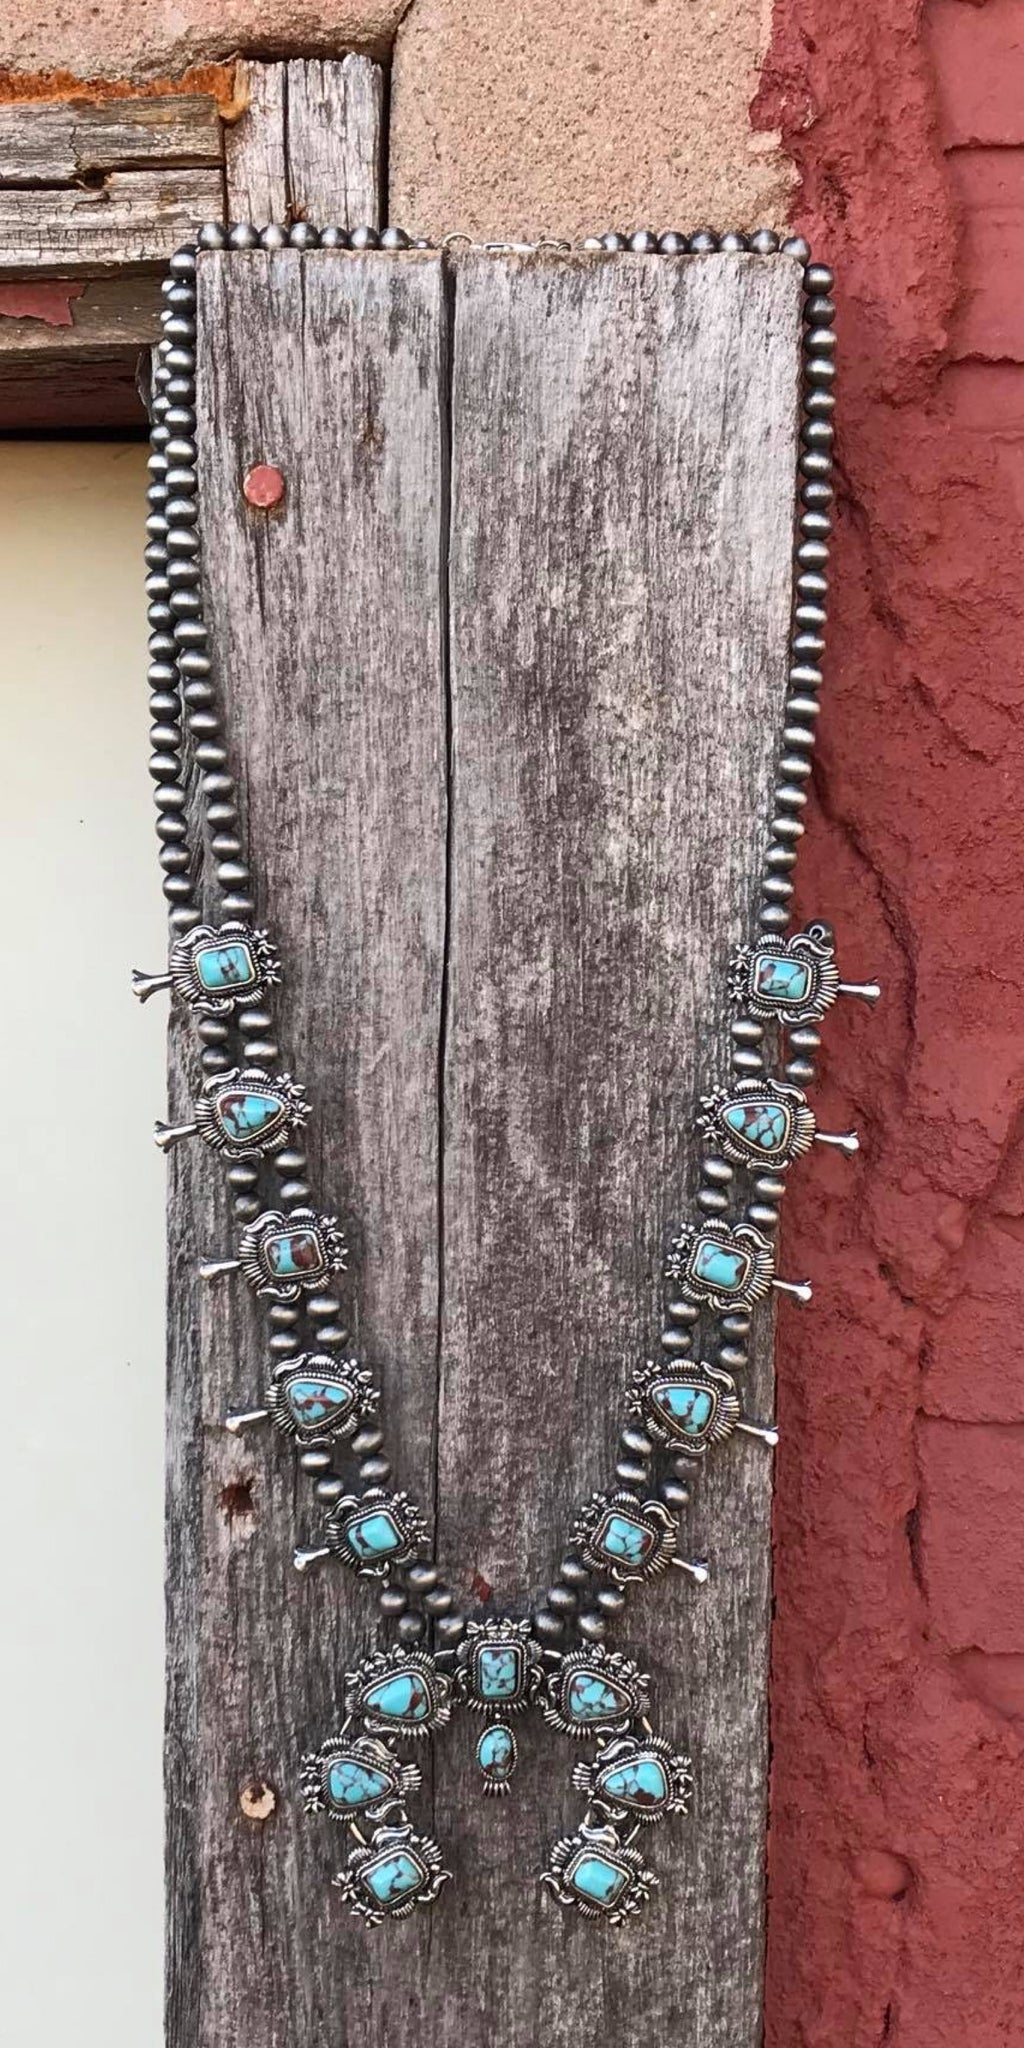 Stamped Turquoise Squash Necklace